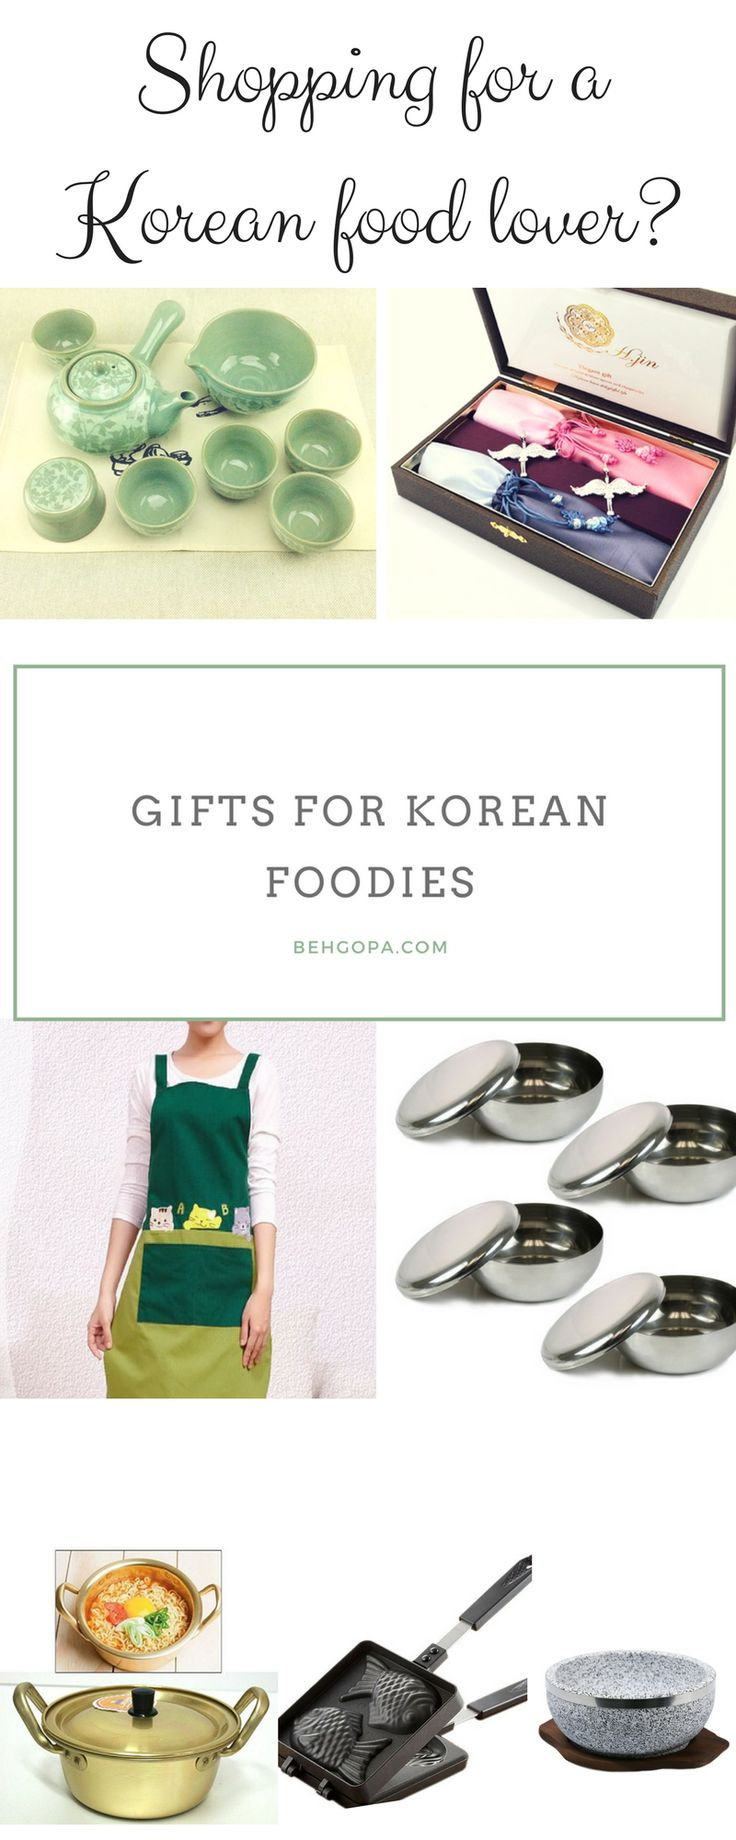 Shopping for a Korean foodie? With my curated list, find gift items for Korean foodies of any level!